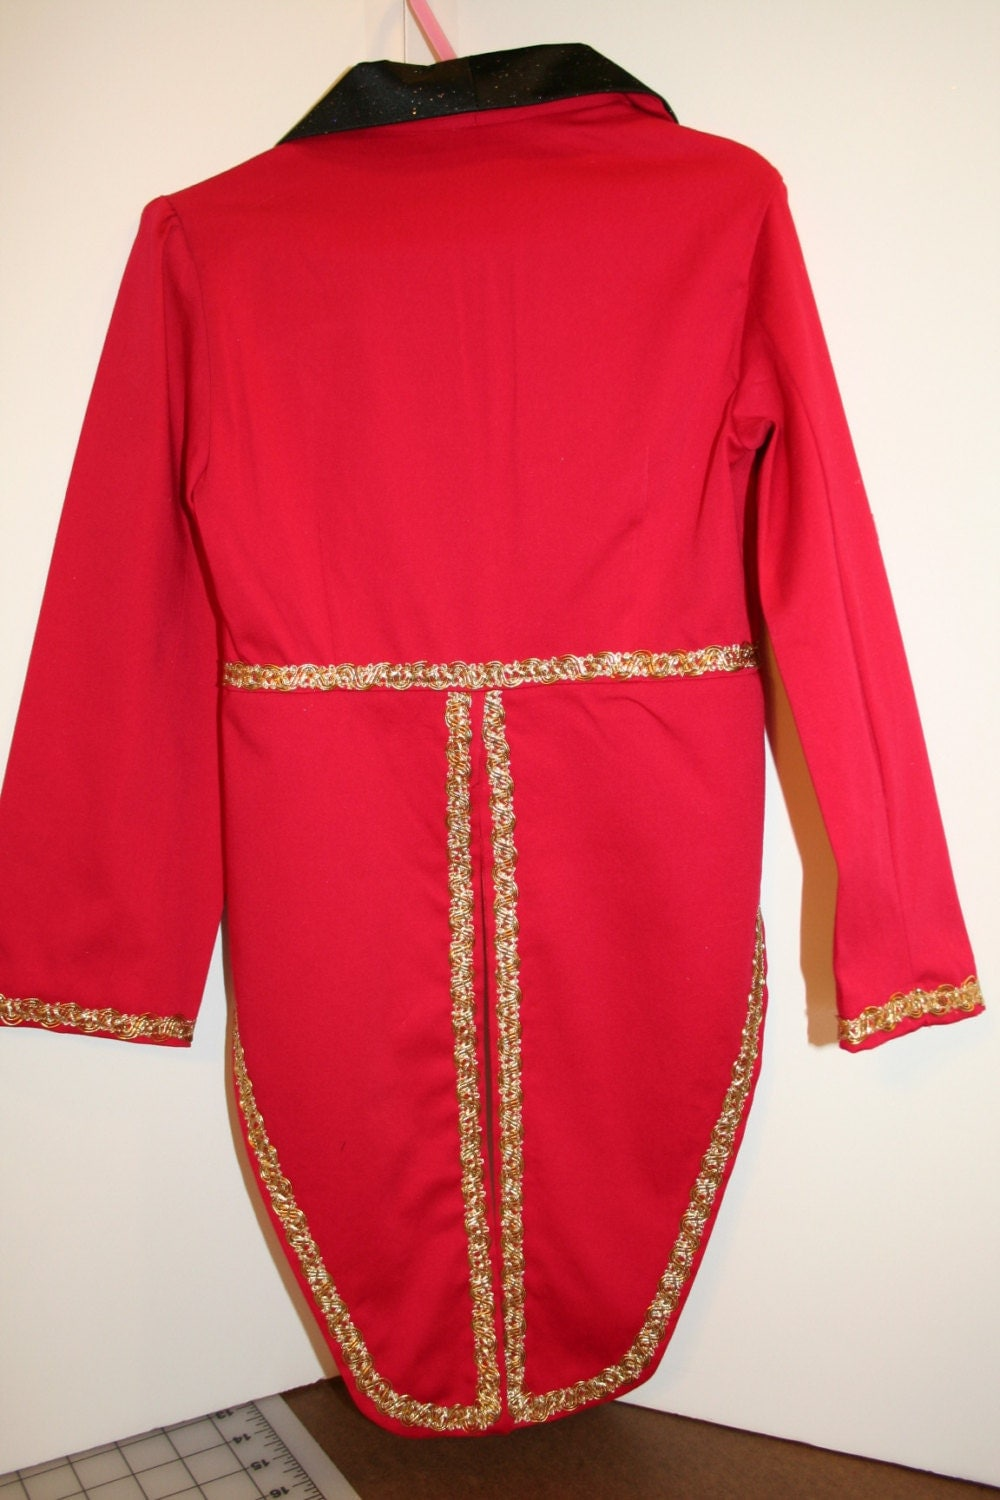 This Freak Show Vintage Cropped Red Ringmaster Jacket is a scary twist to your women's circus ringmaster costume! Featuring hand-stained fabric for a vintage feel, this red tailcoat has skull buttons, gold epaulettes, striped satin cuffs, and flame detail on the wrists.